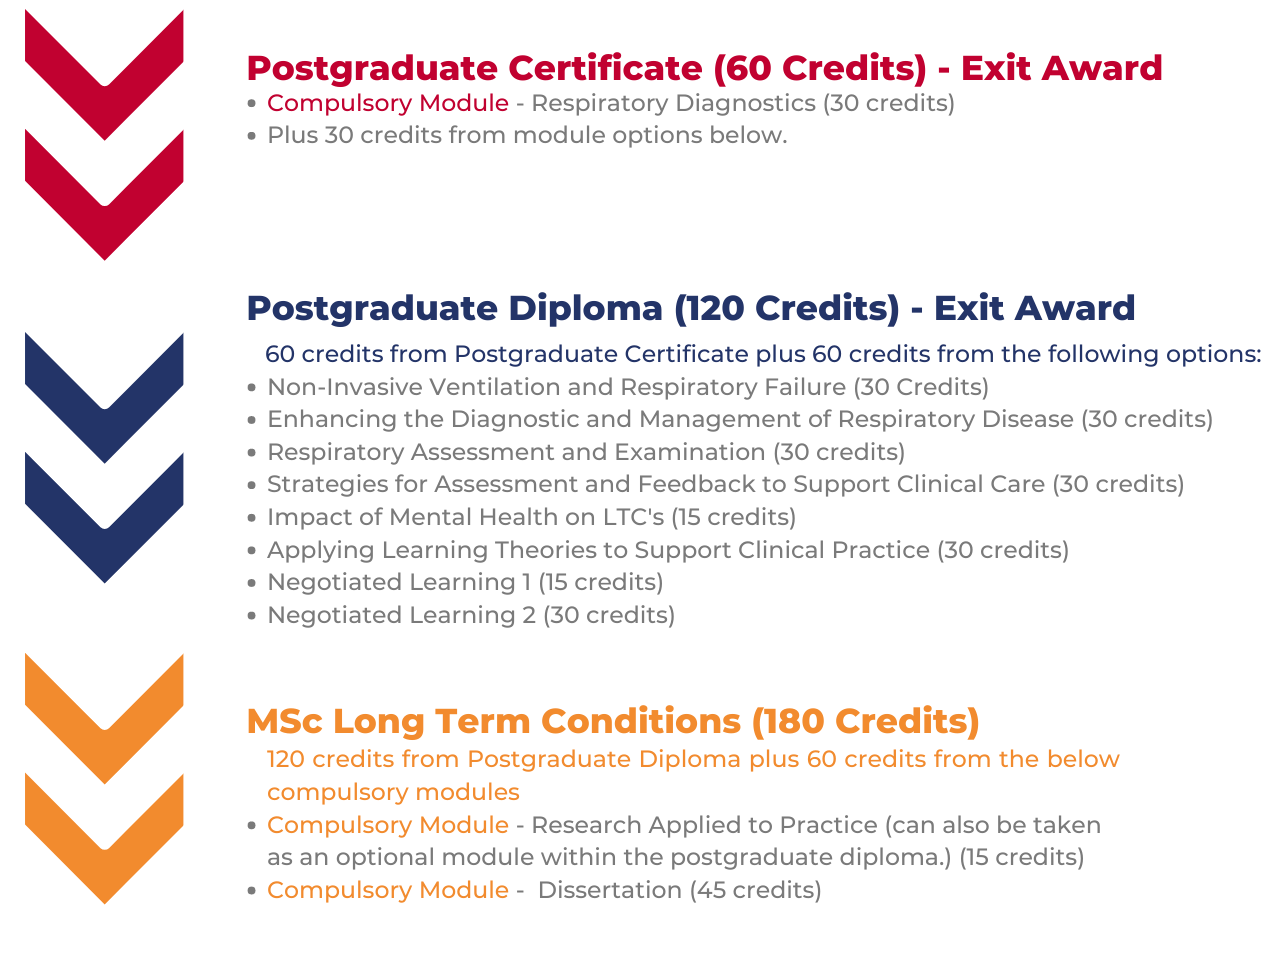 MSc Long Term Conditions pathway